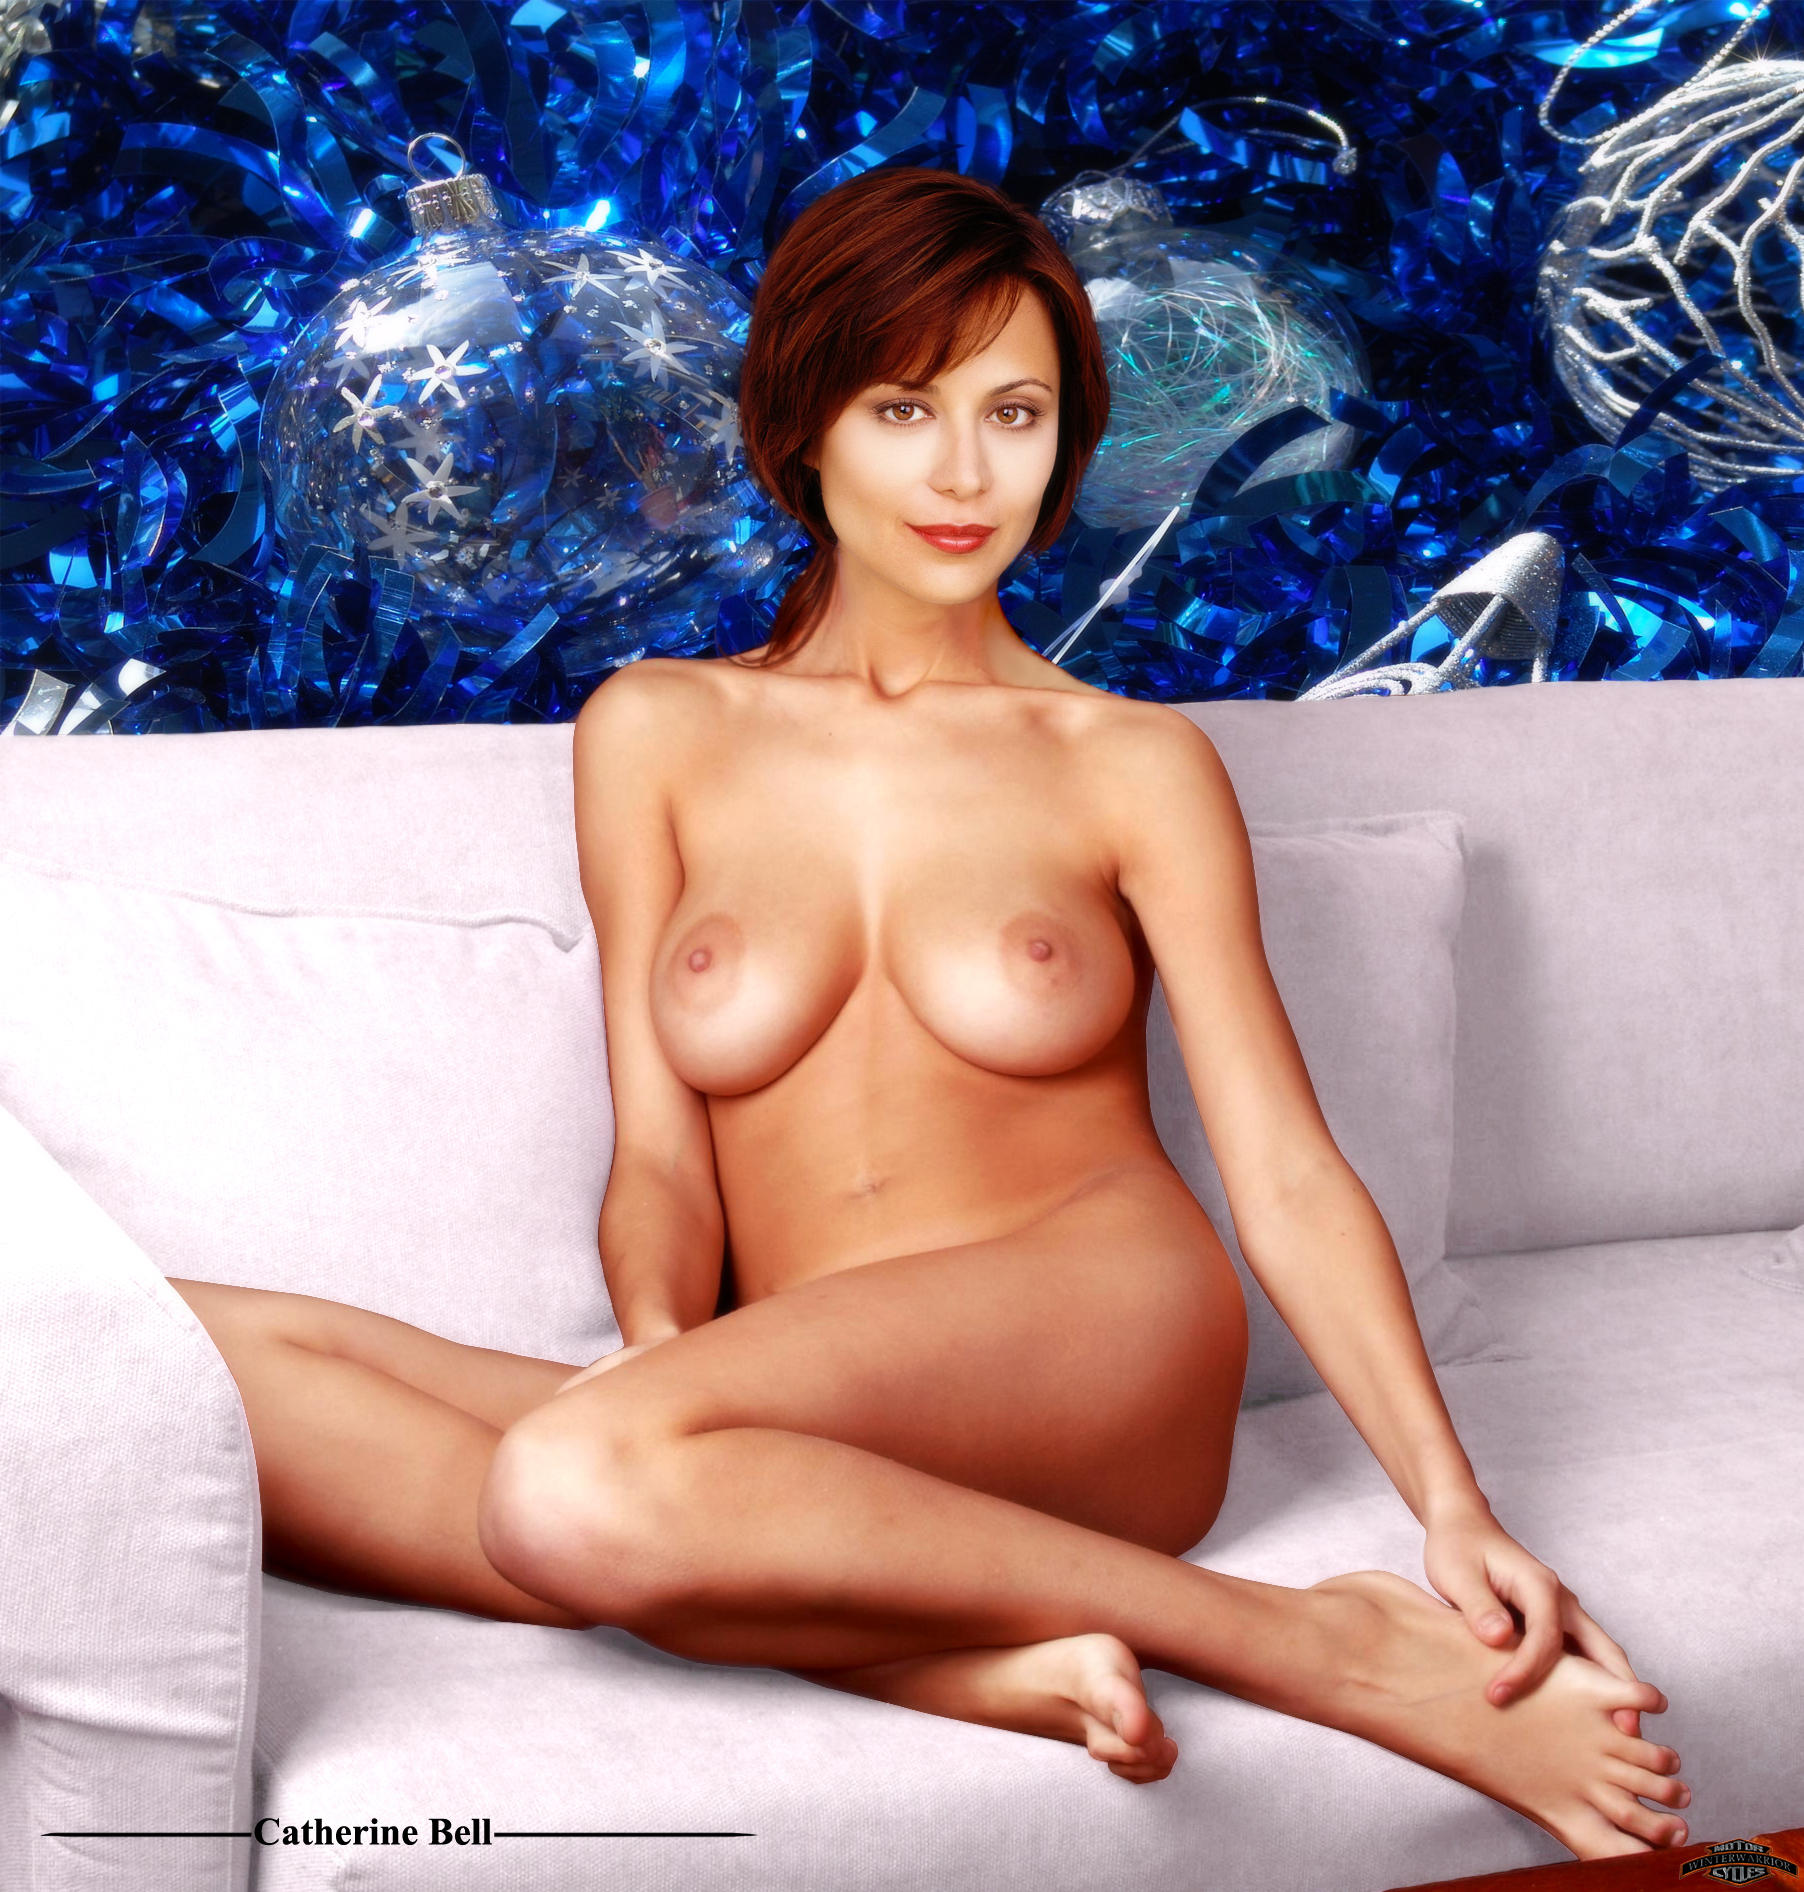 Catherine bell nude leaked pics and porn photo